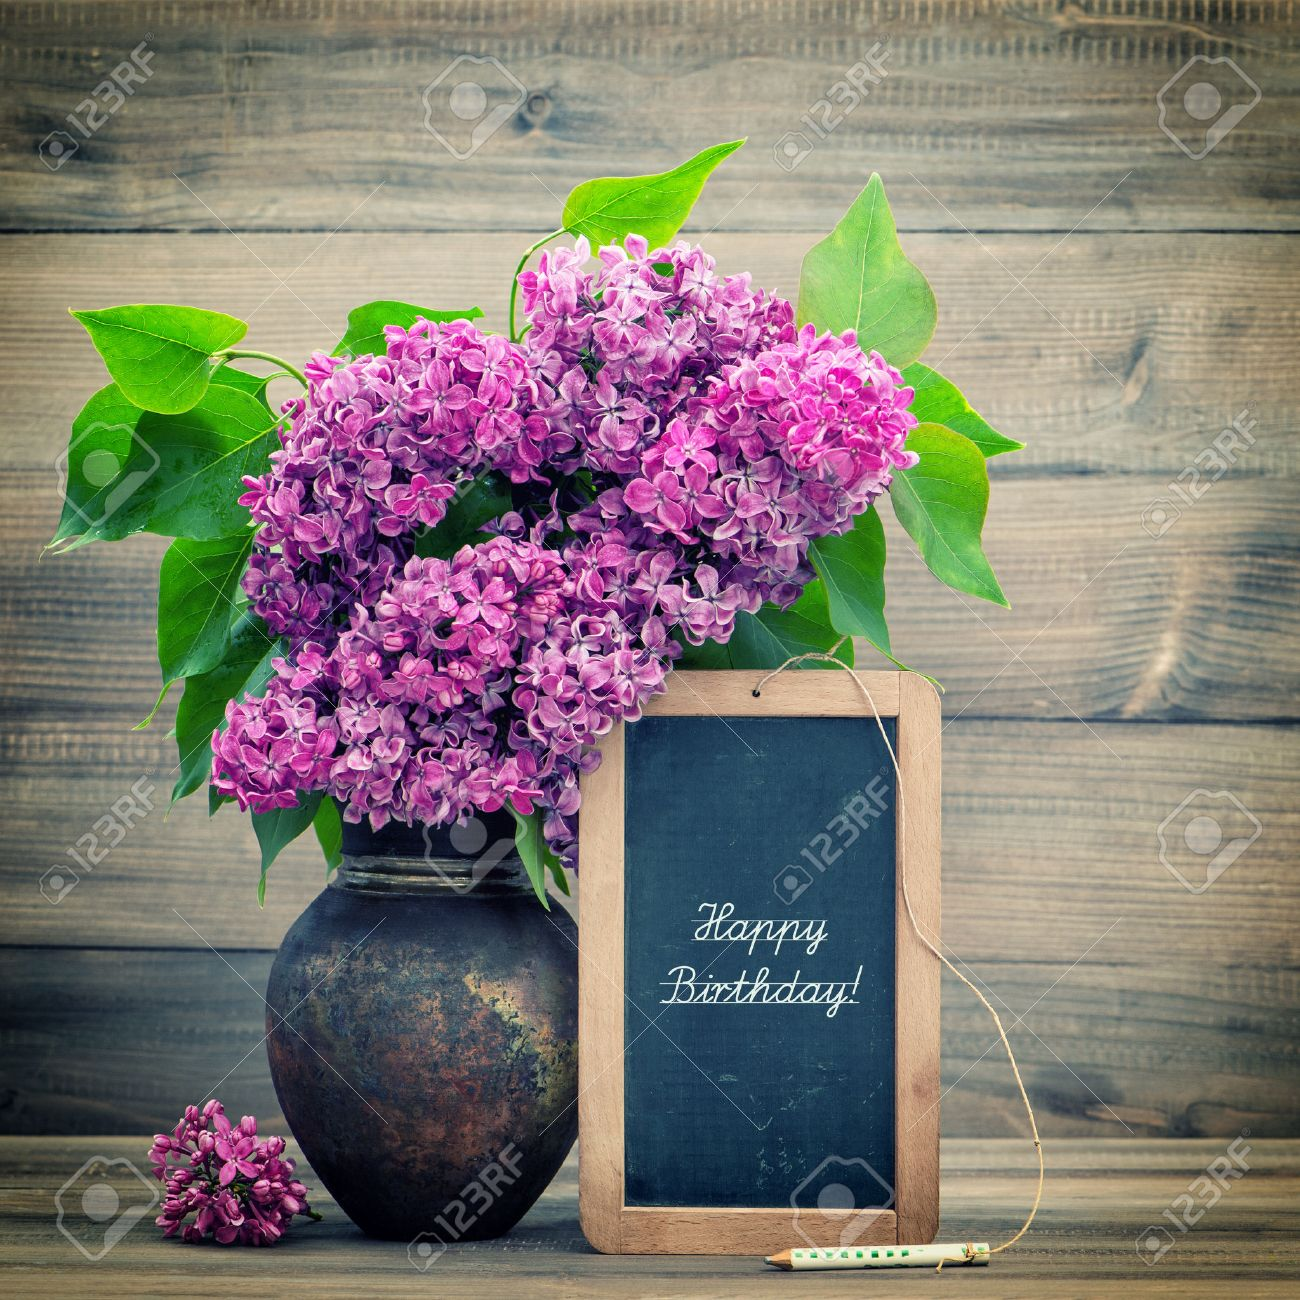 Birthday Bouquet Stock Photos Royalty Free Birthday Bouquet Images